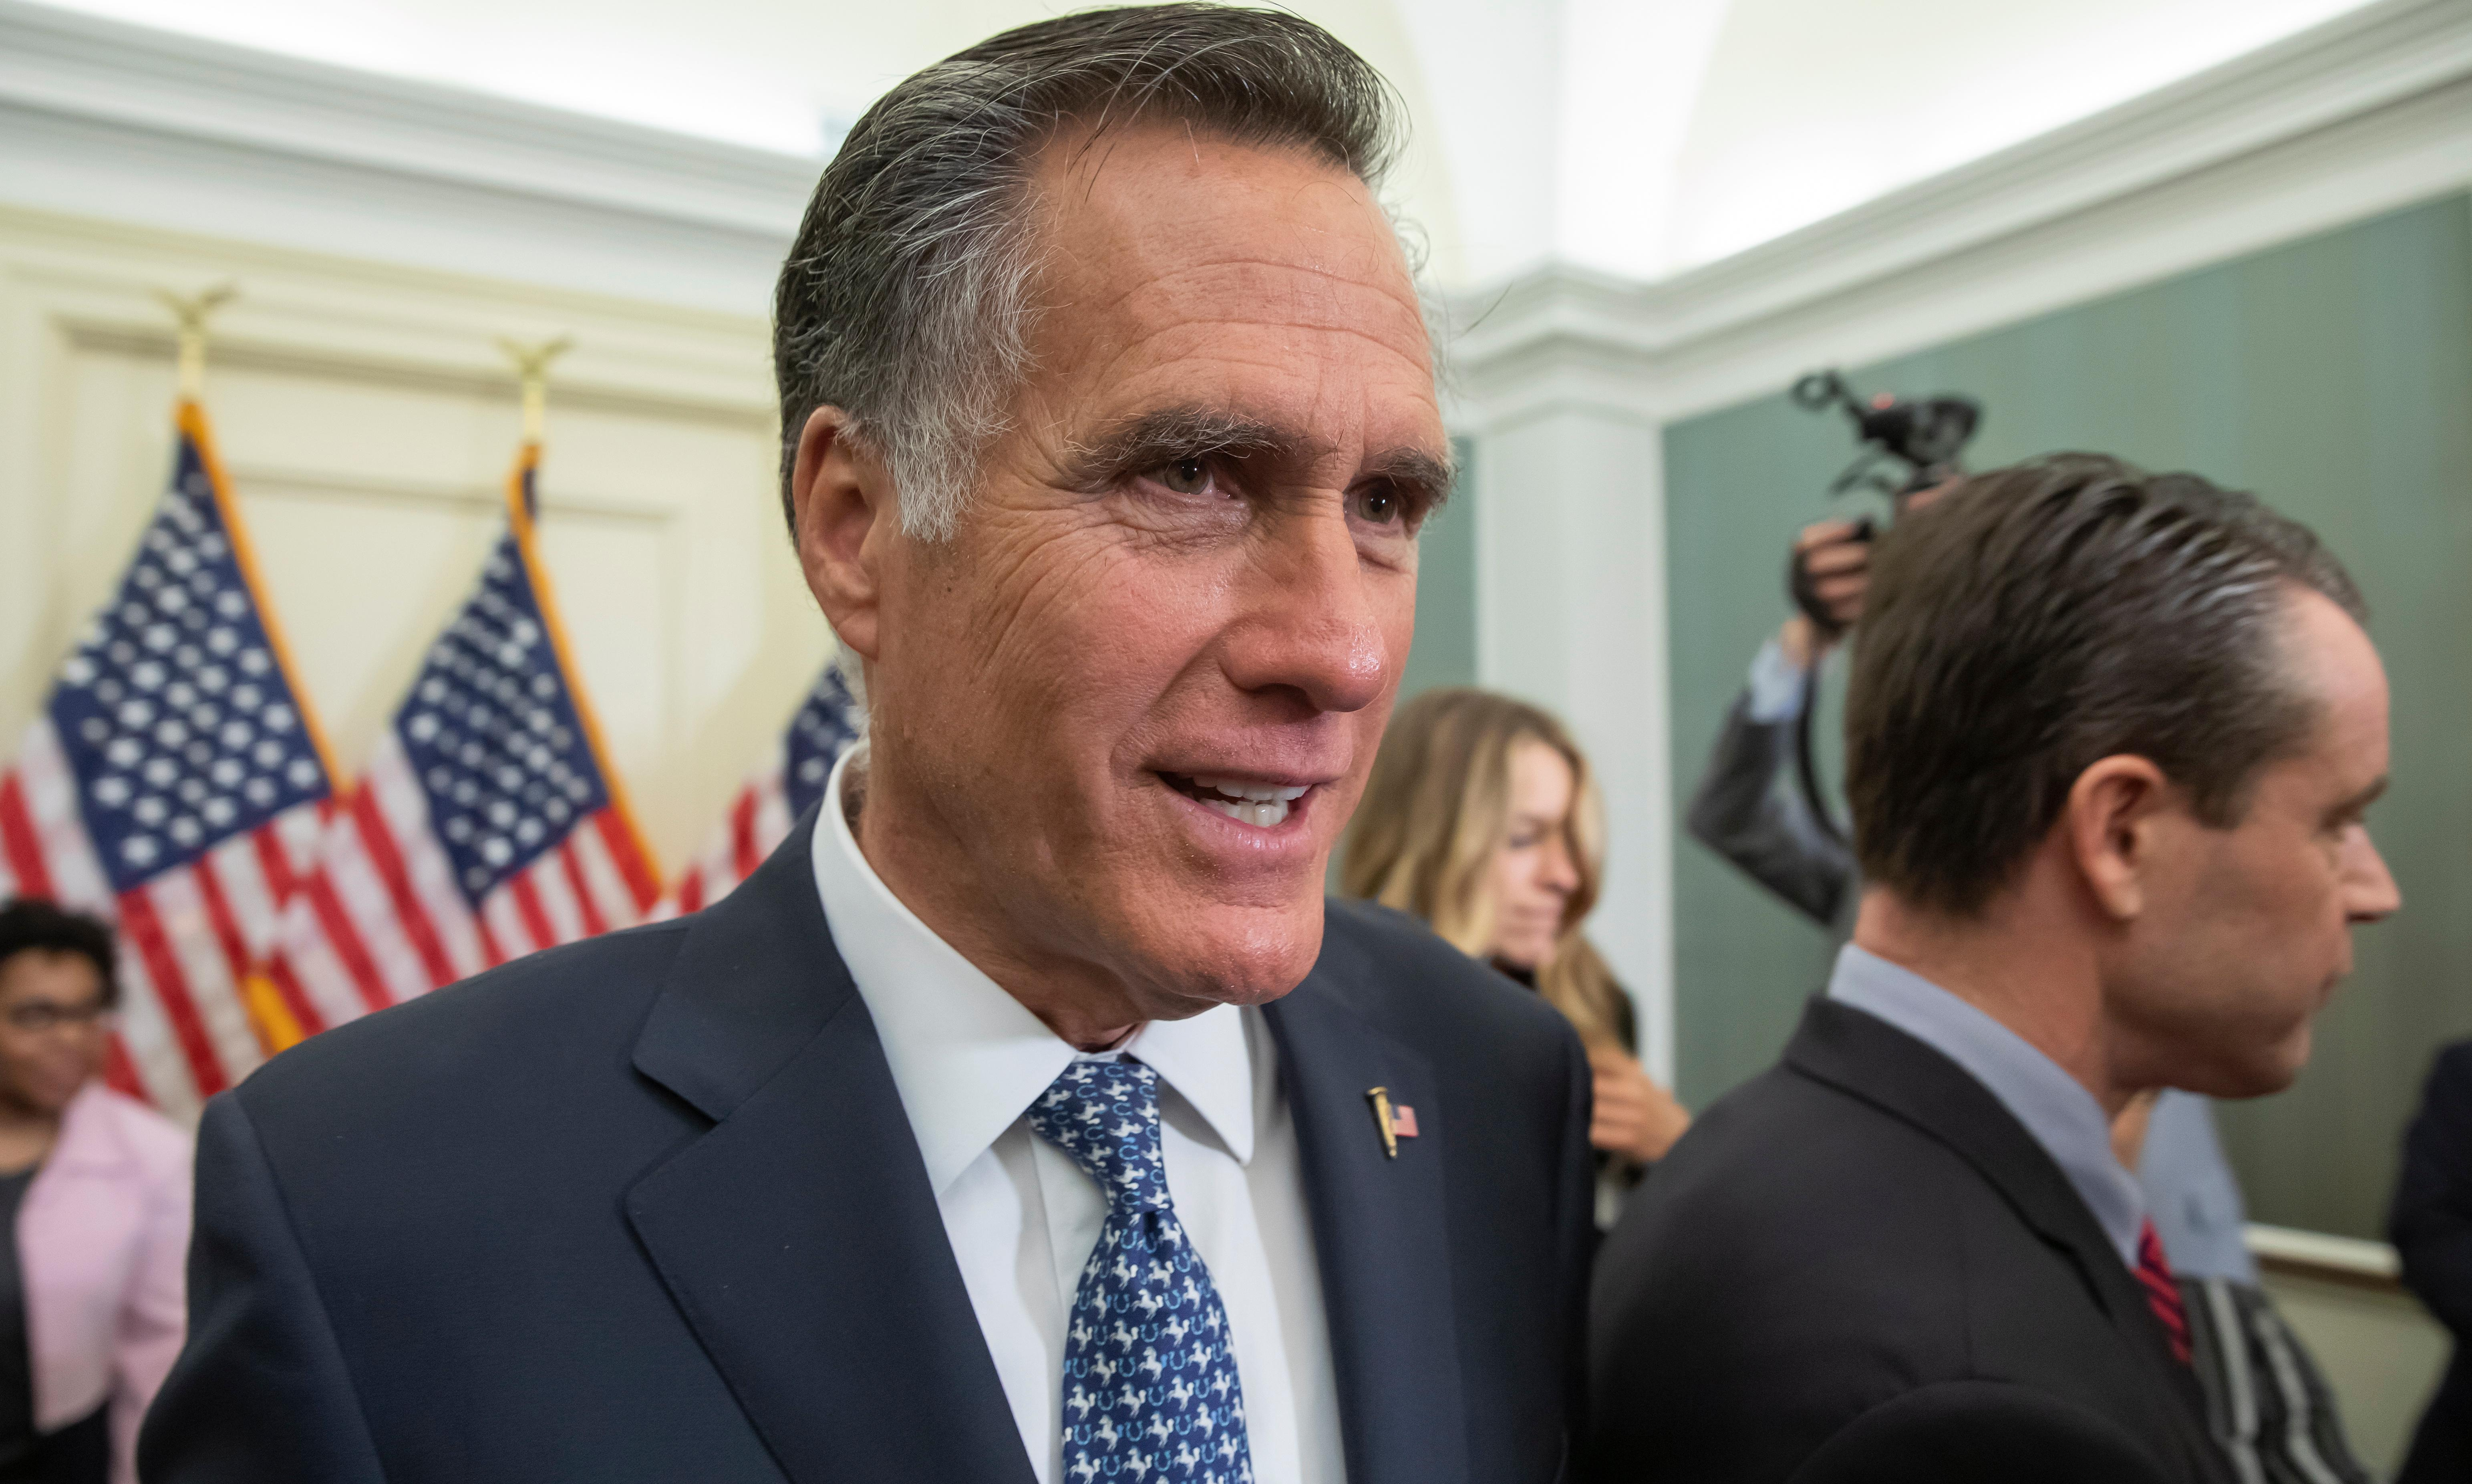 Iran war 'not going to happen' despite rising tensions, says Romney